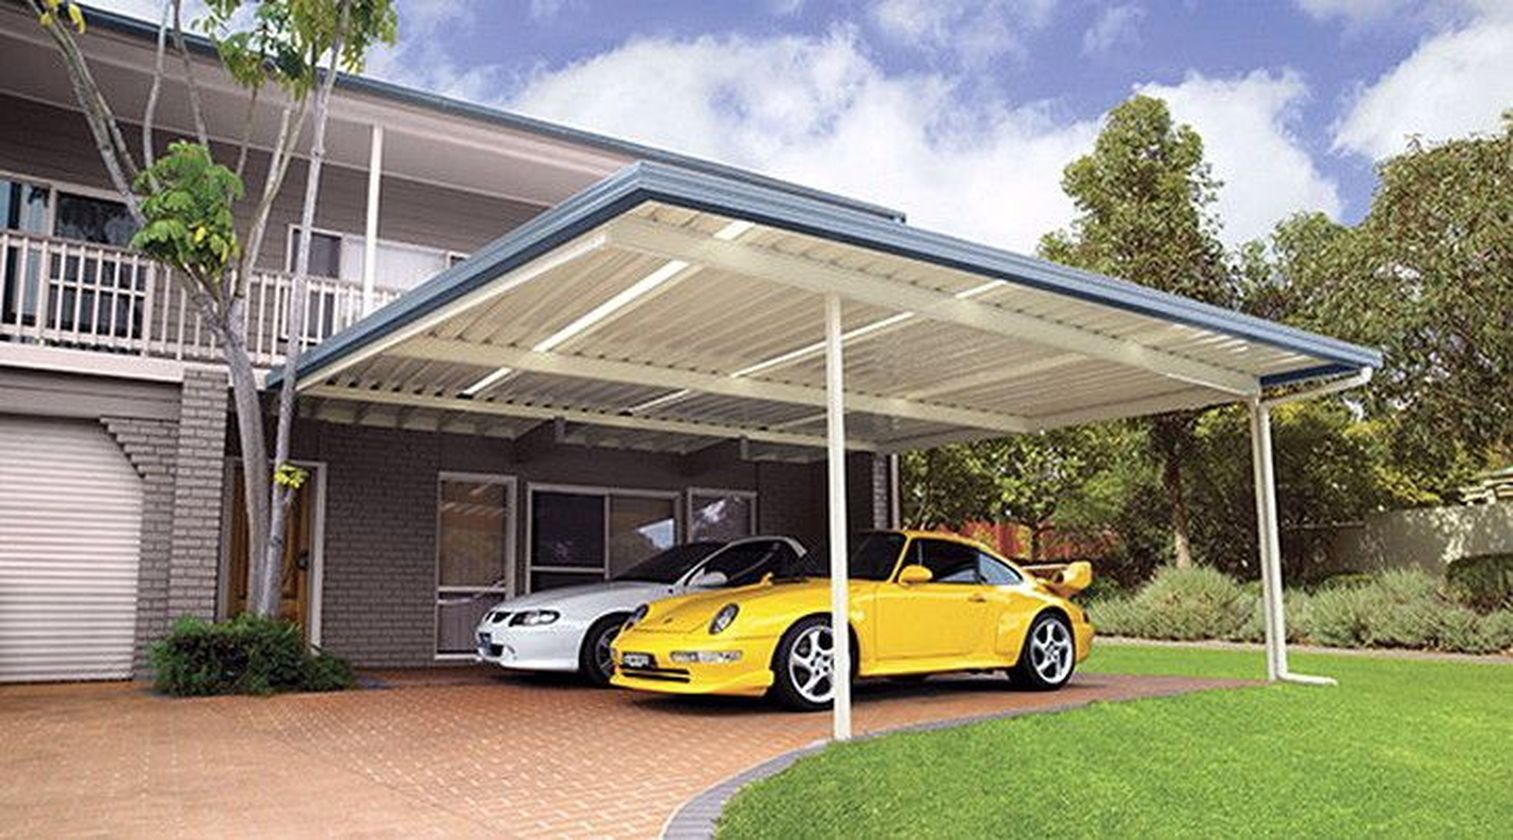 54 Cool Car Garage Design Ideas For Minimalist Home Garage